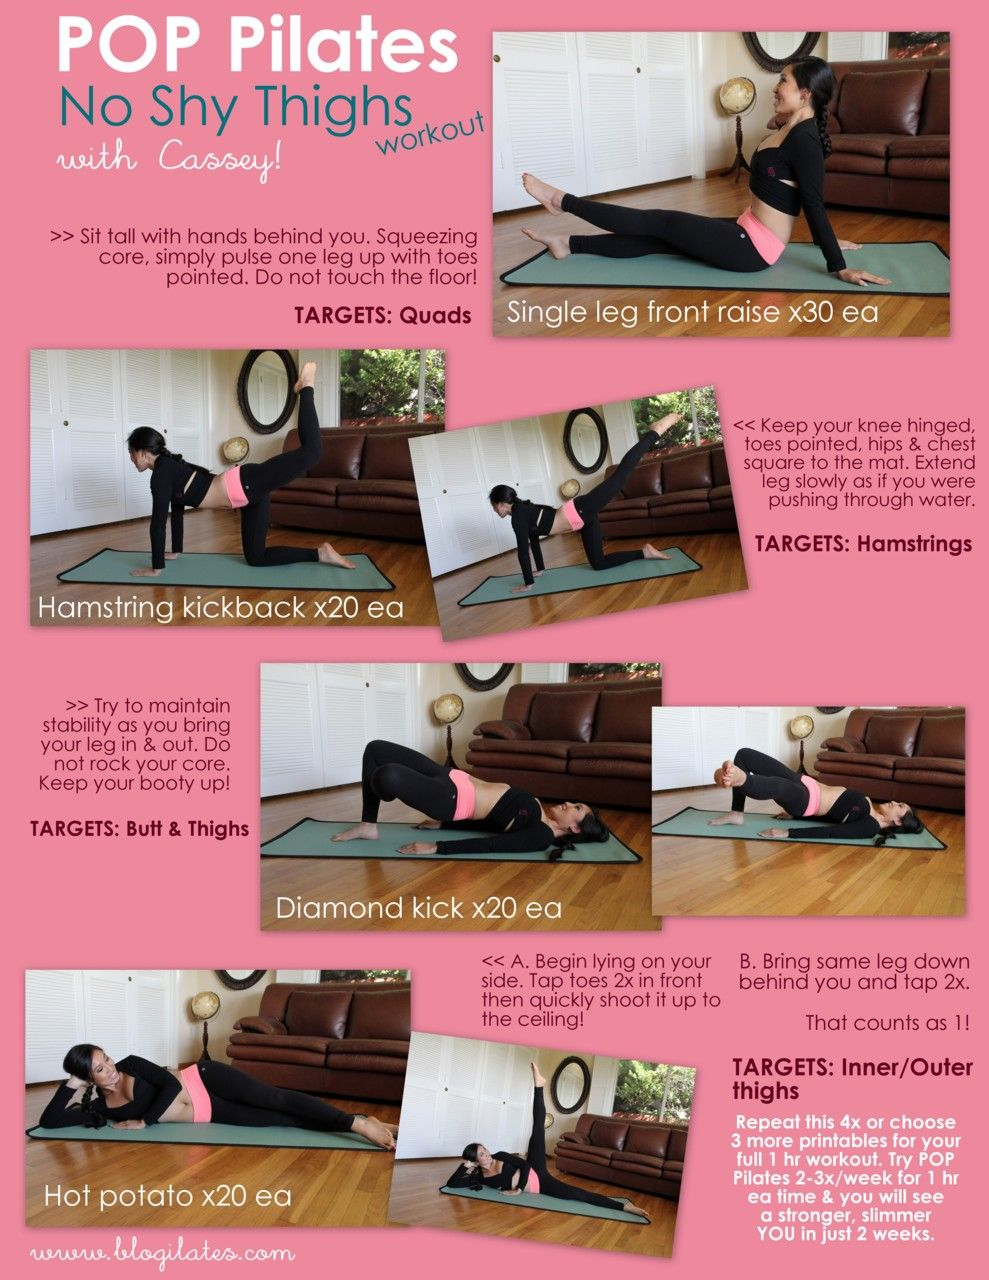 Will have to remember these when I'm traveling.  Great hotel room workout idea.